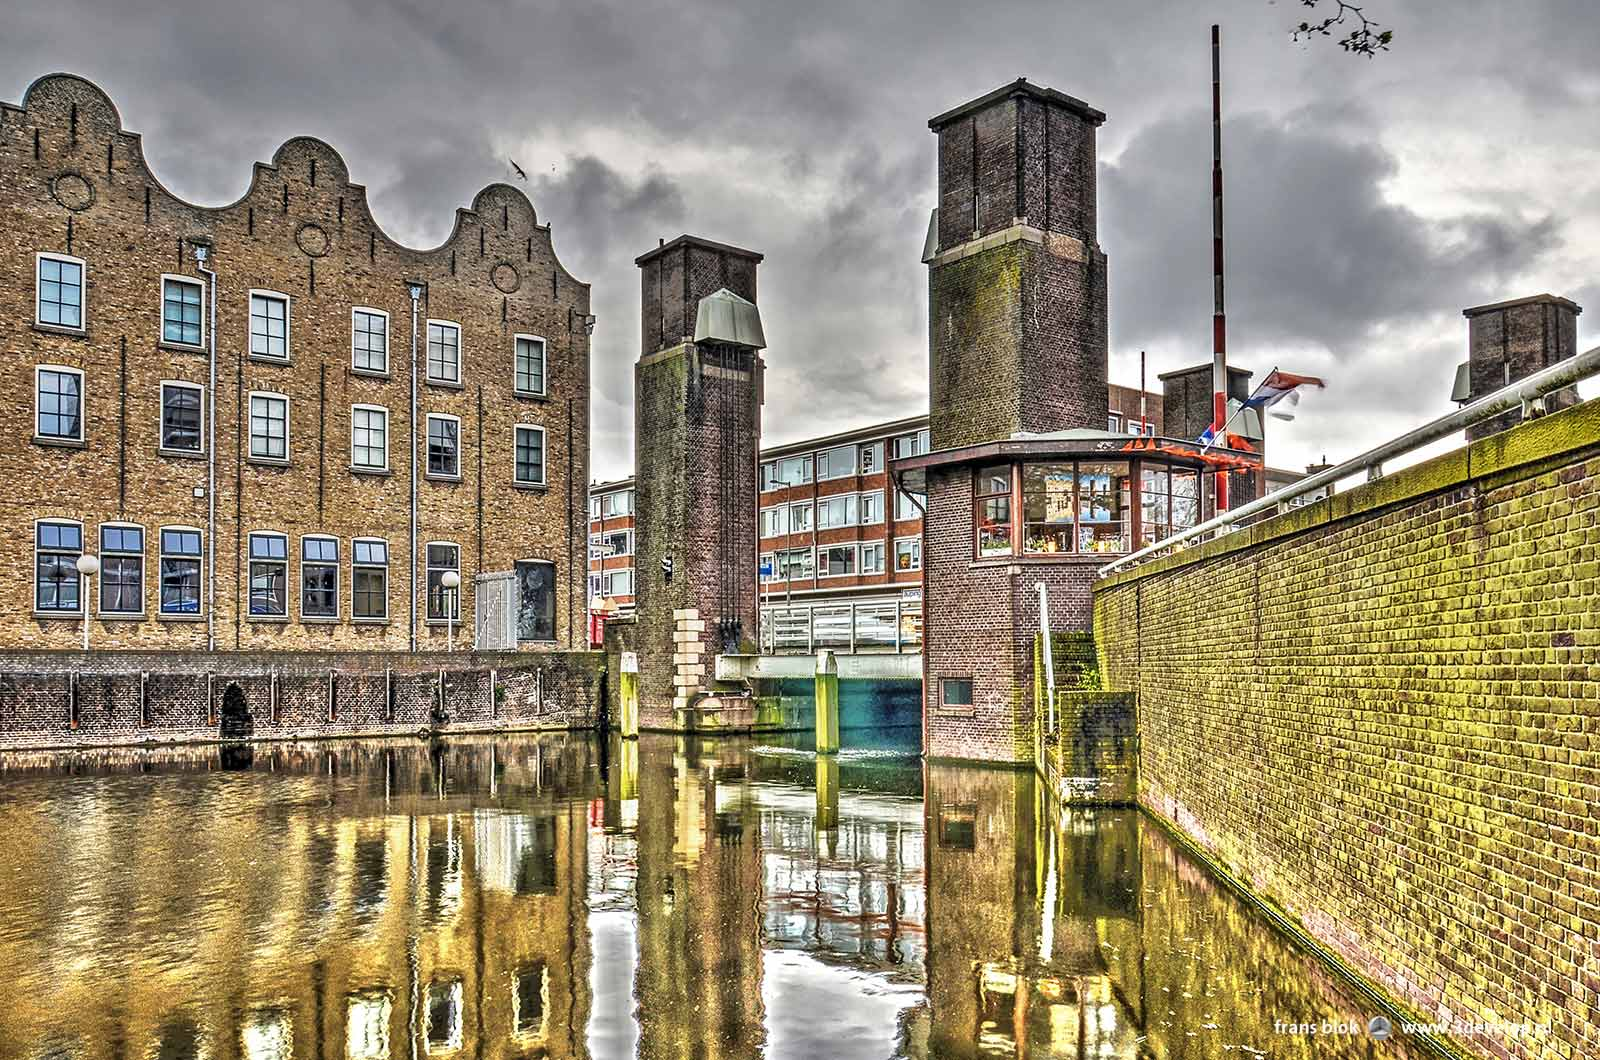 The New Harbour in Schiedam, with historic warehouses and the towers and the bridge keeper's cabin of the Orange Bridge